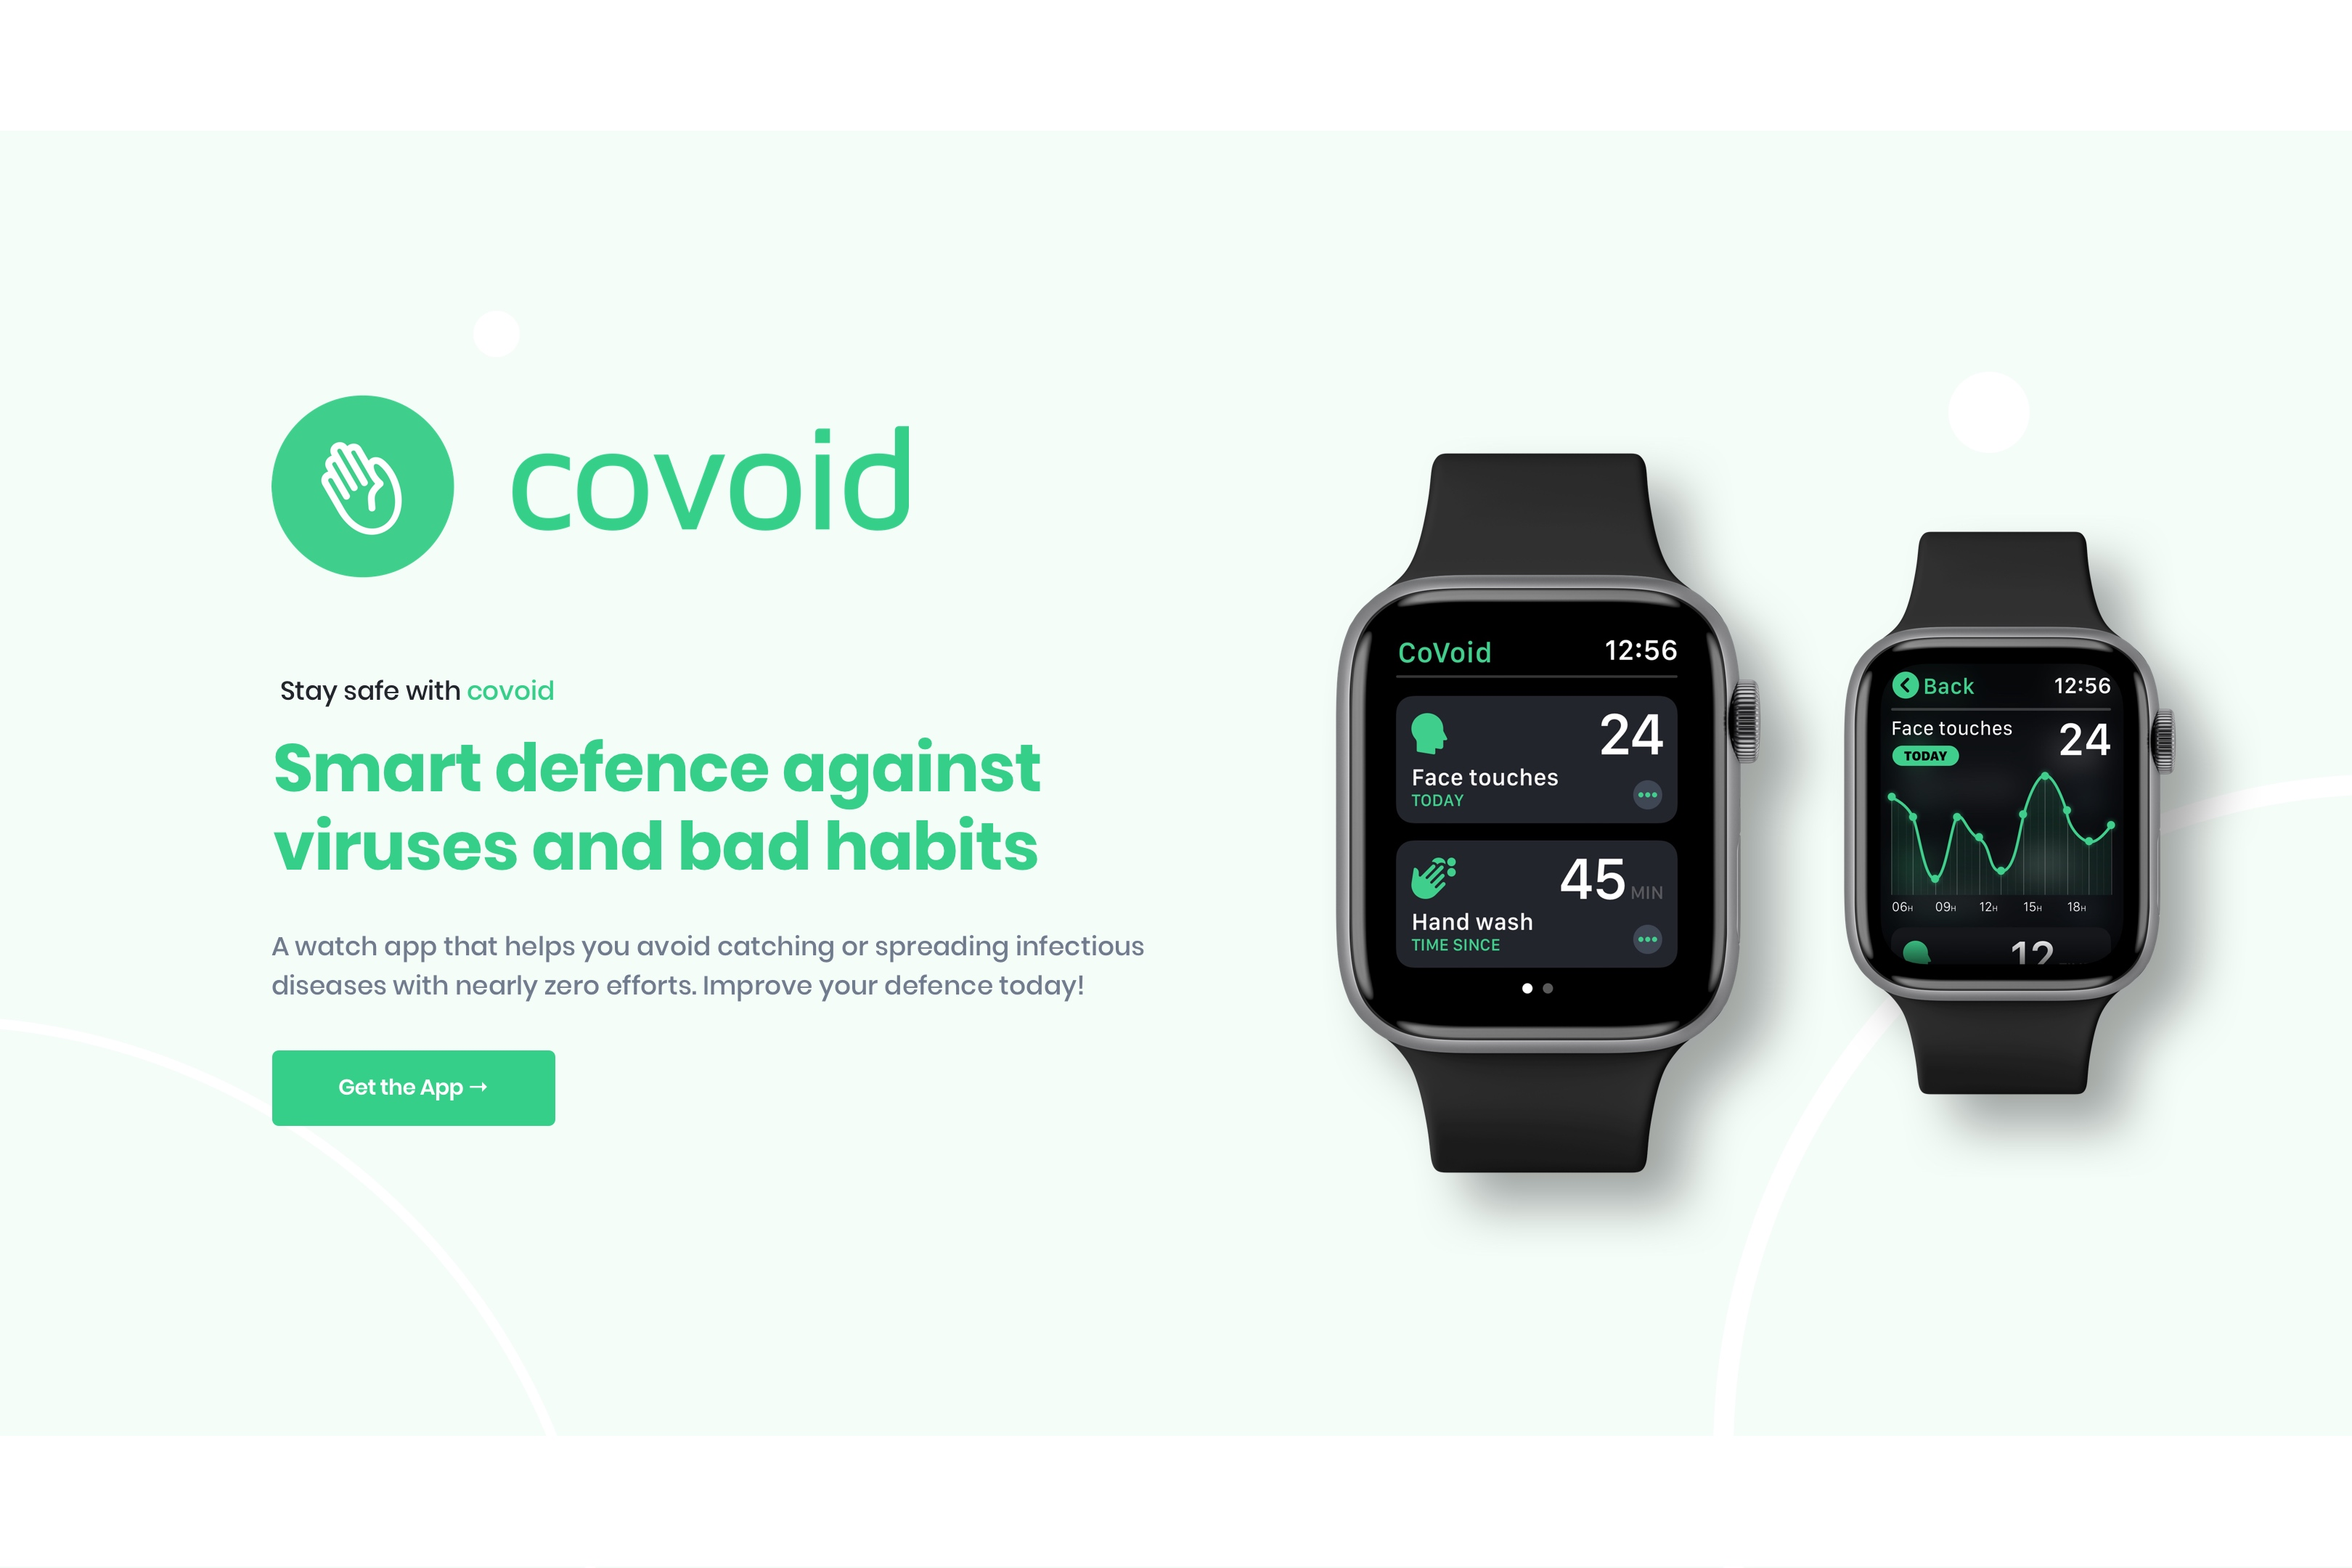 CoVoid